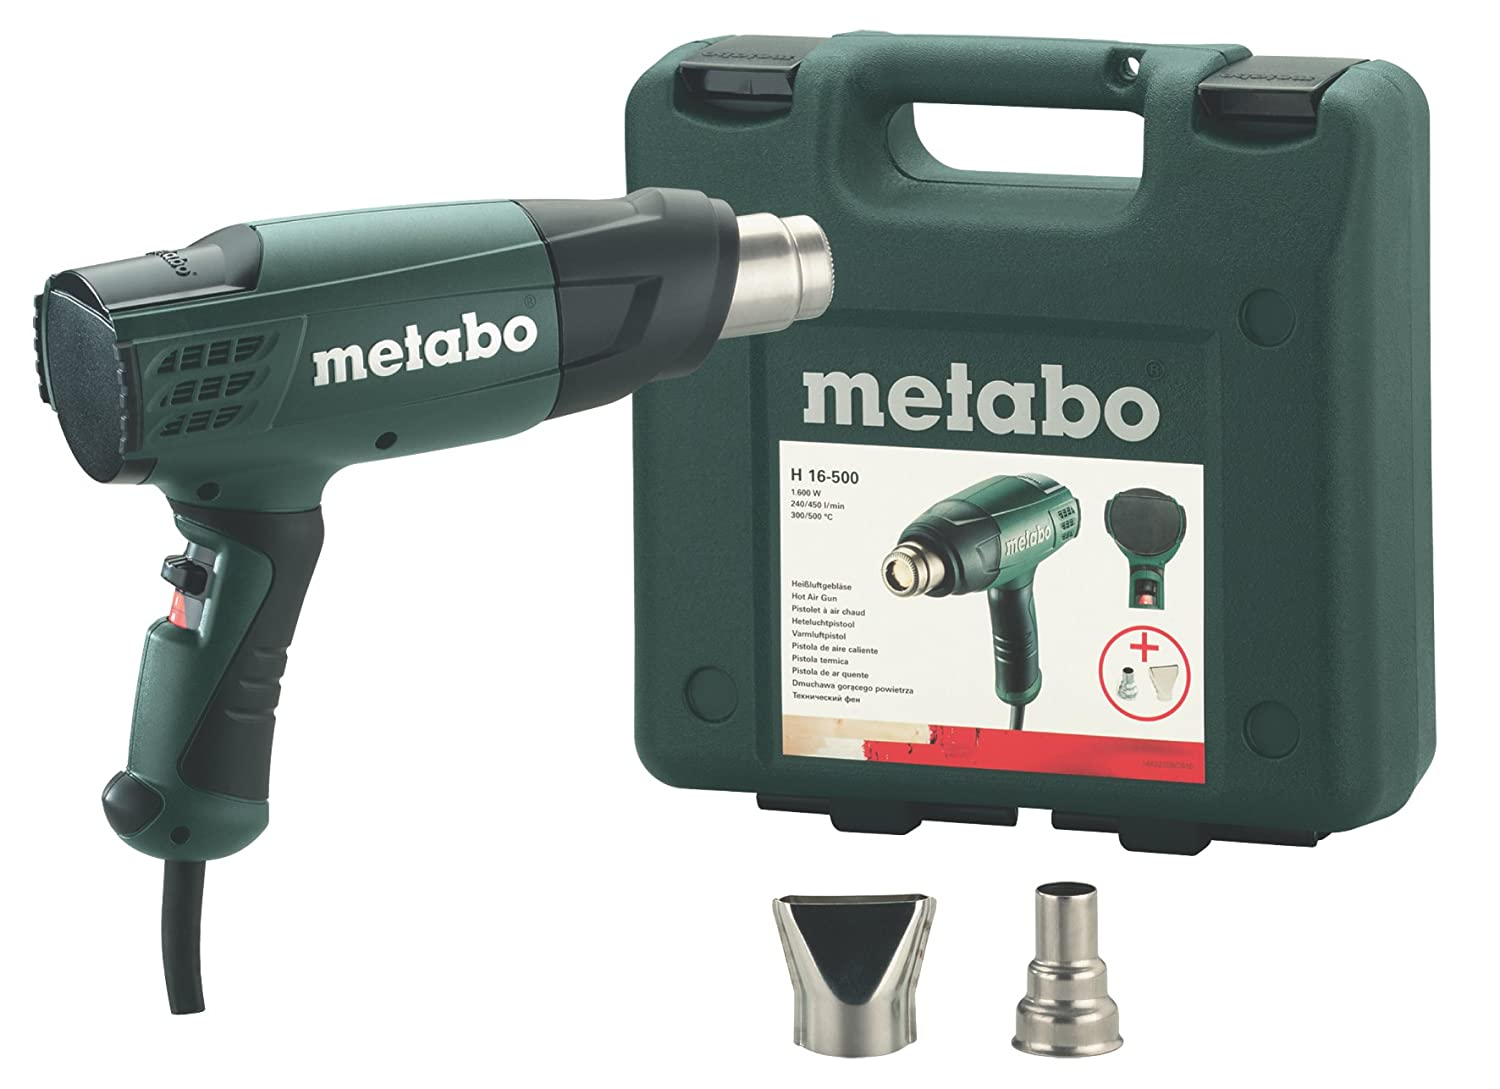 Pistolets à air chaud HE 16-500 Metabo H16500